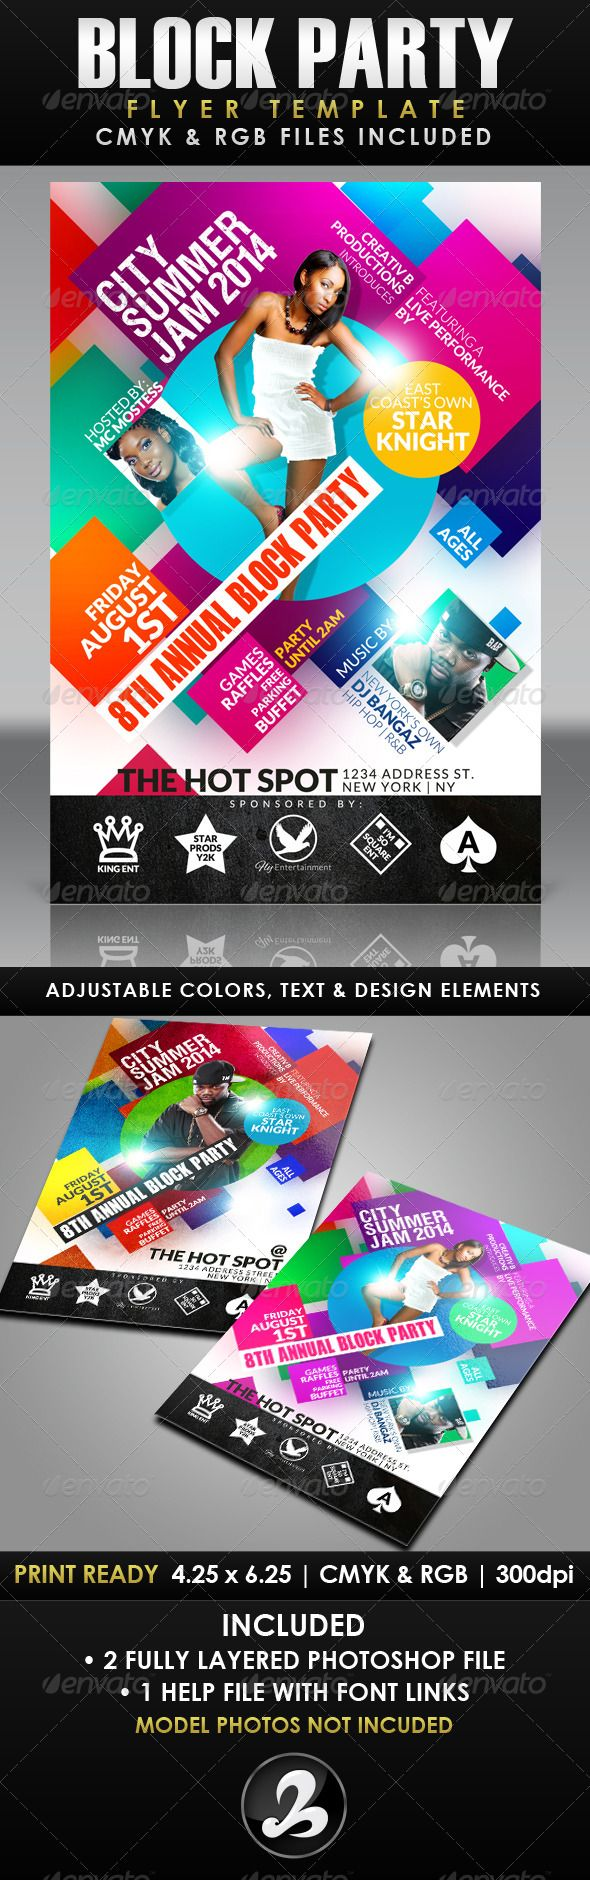 Block Party Flyer Template | Party flyer, Flyer template and Club ...